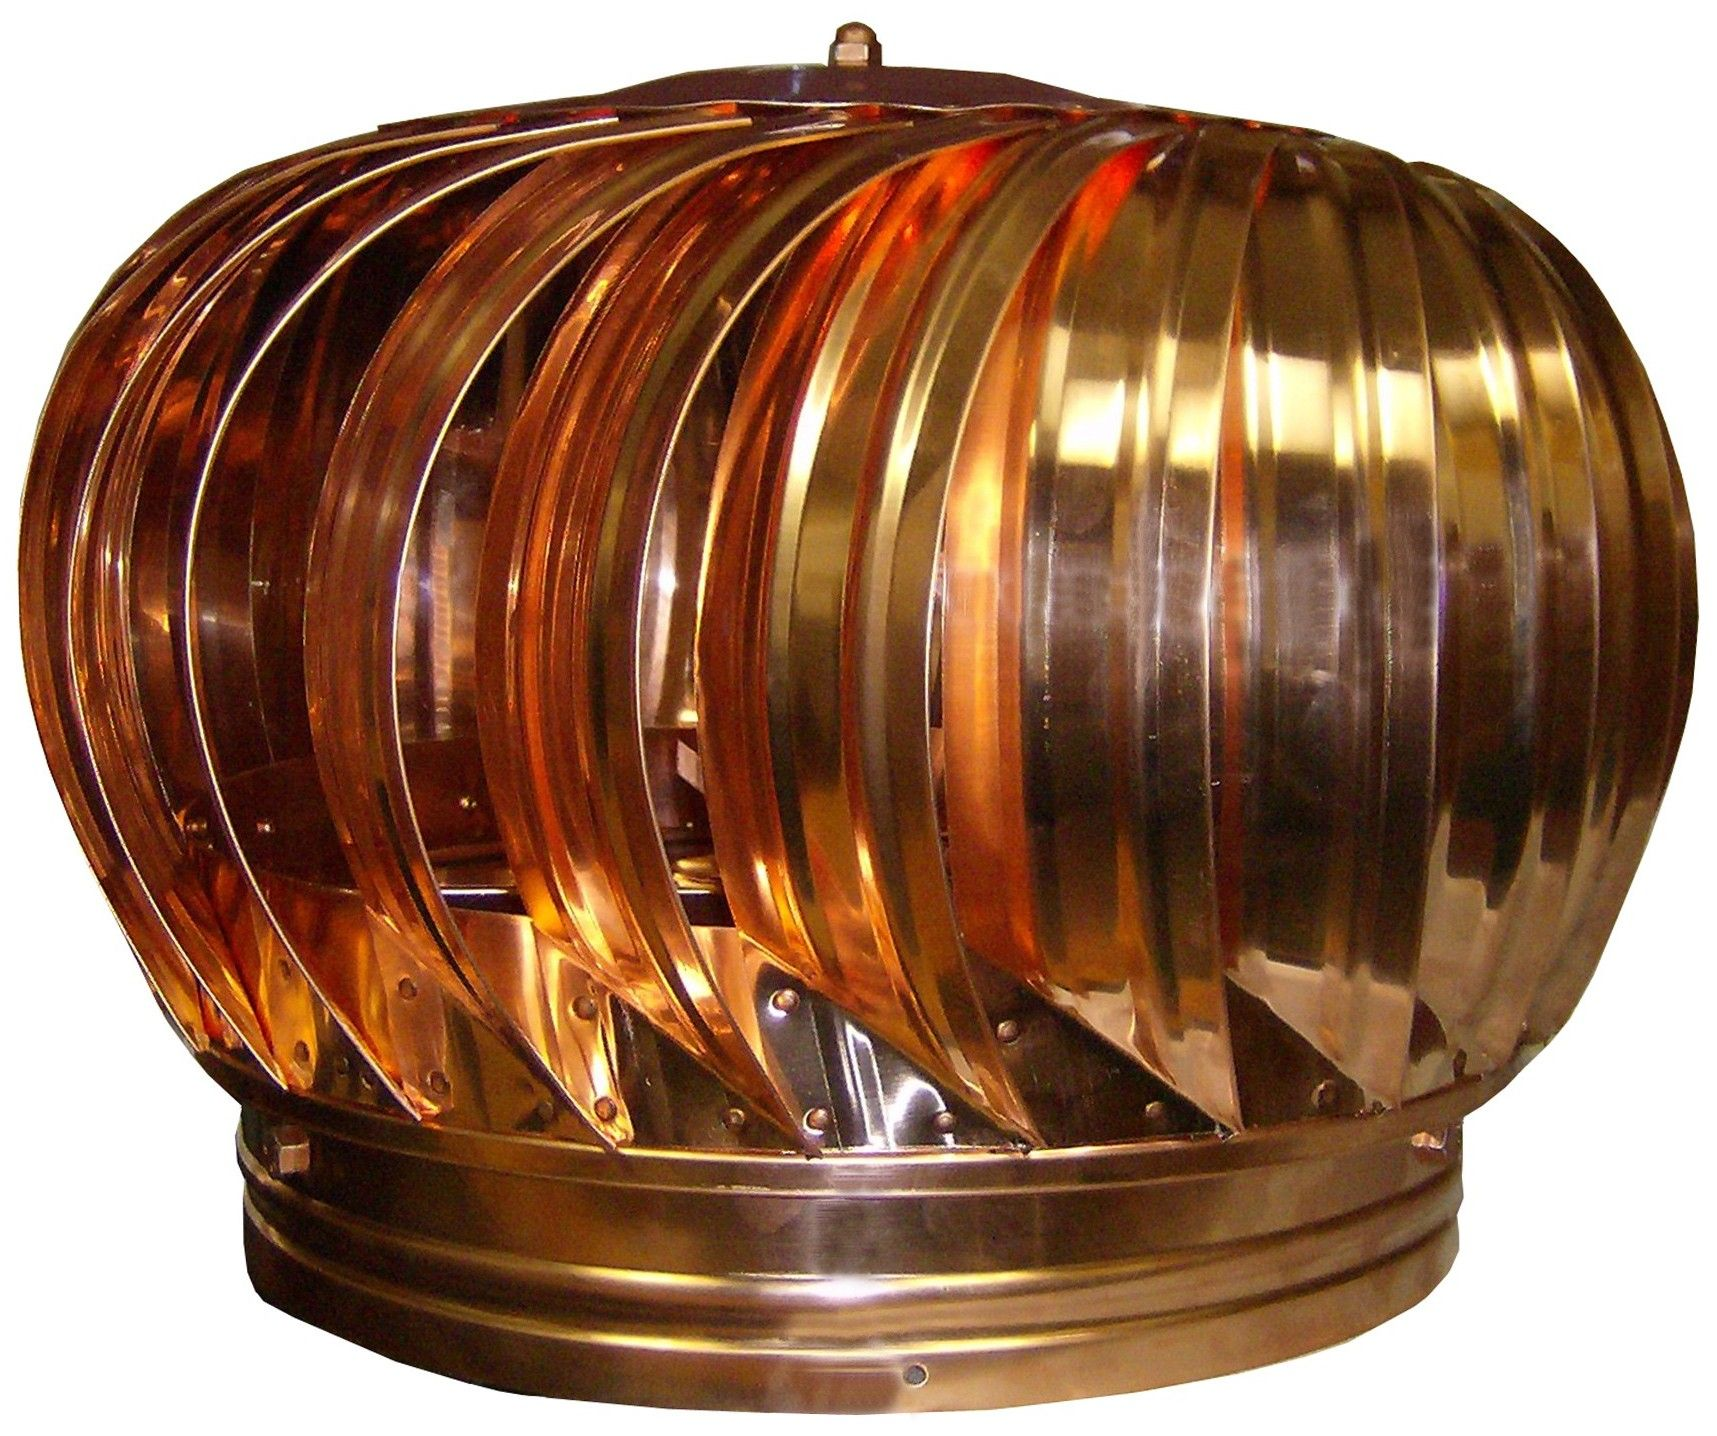 Copper Spinning Turbine Vent Exterior Roof Vents Copper Roof Copper Bathroom